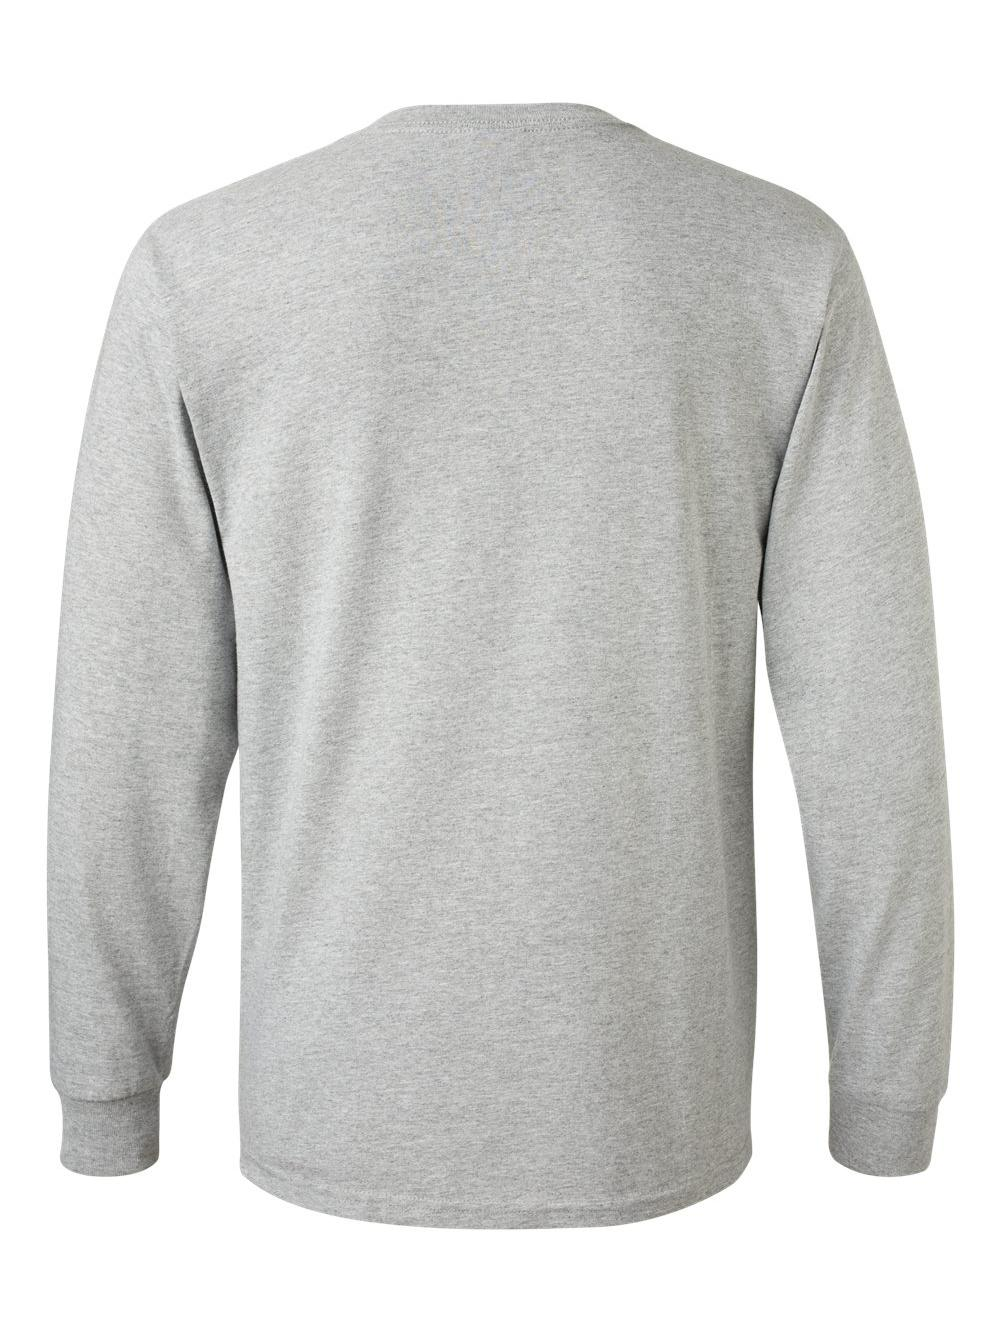 Fruit-of-the-Loom-HD-Cotton-Long-Sleeve-T-Shirt-4930R thumbnail 7